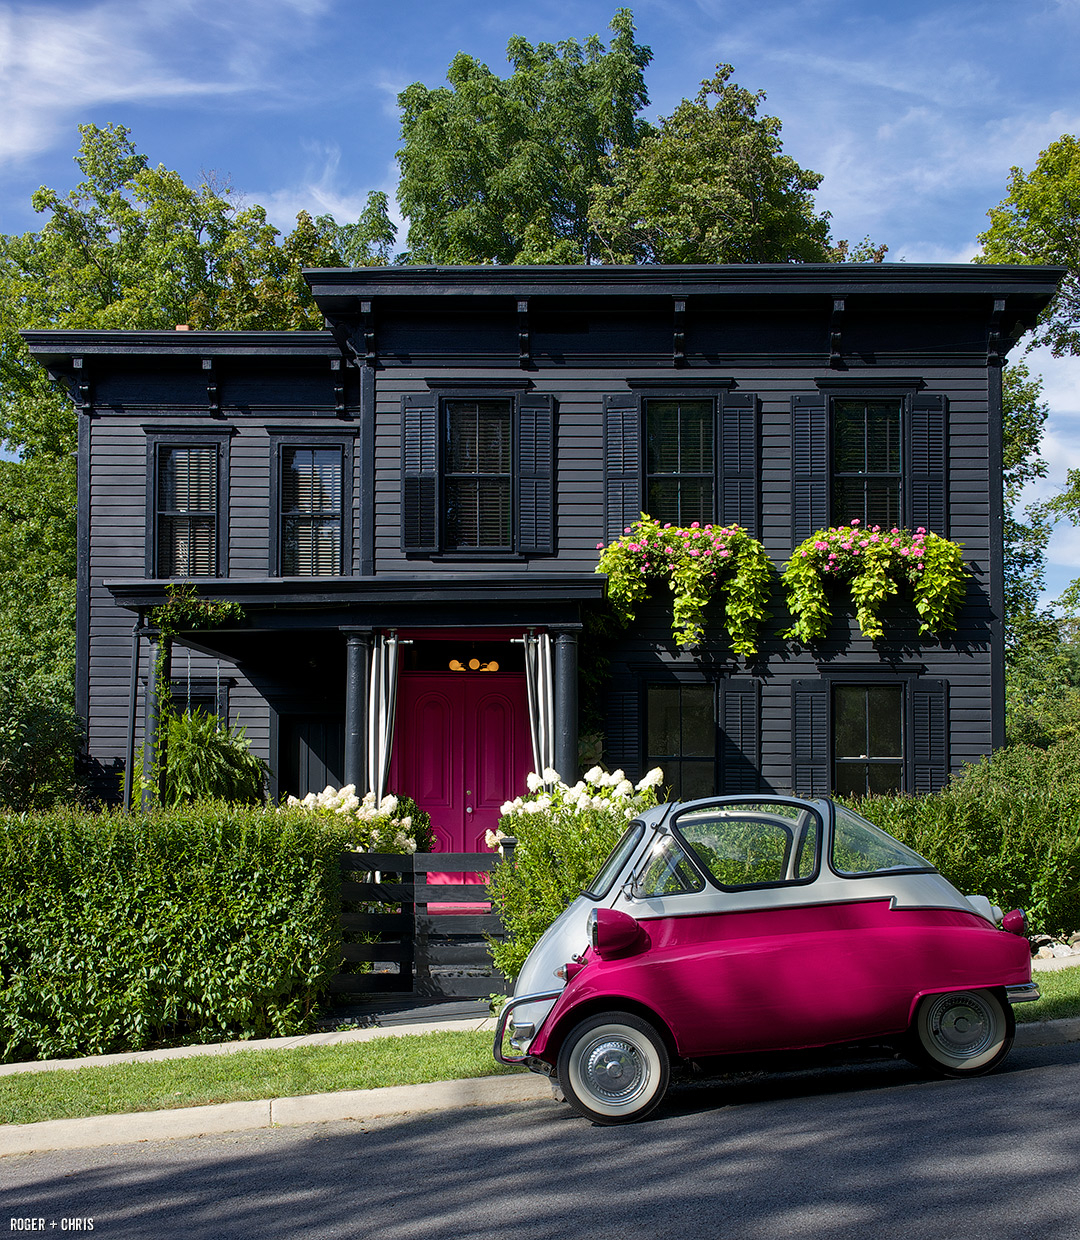 The front of the house with pink doors, window boxes, and a BMW Isetta parked out front.